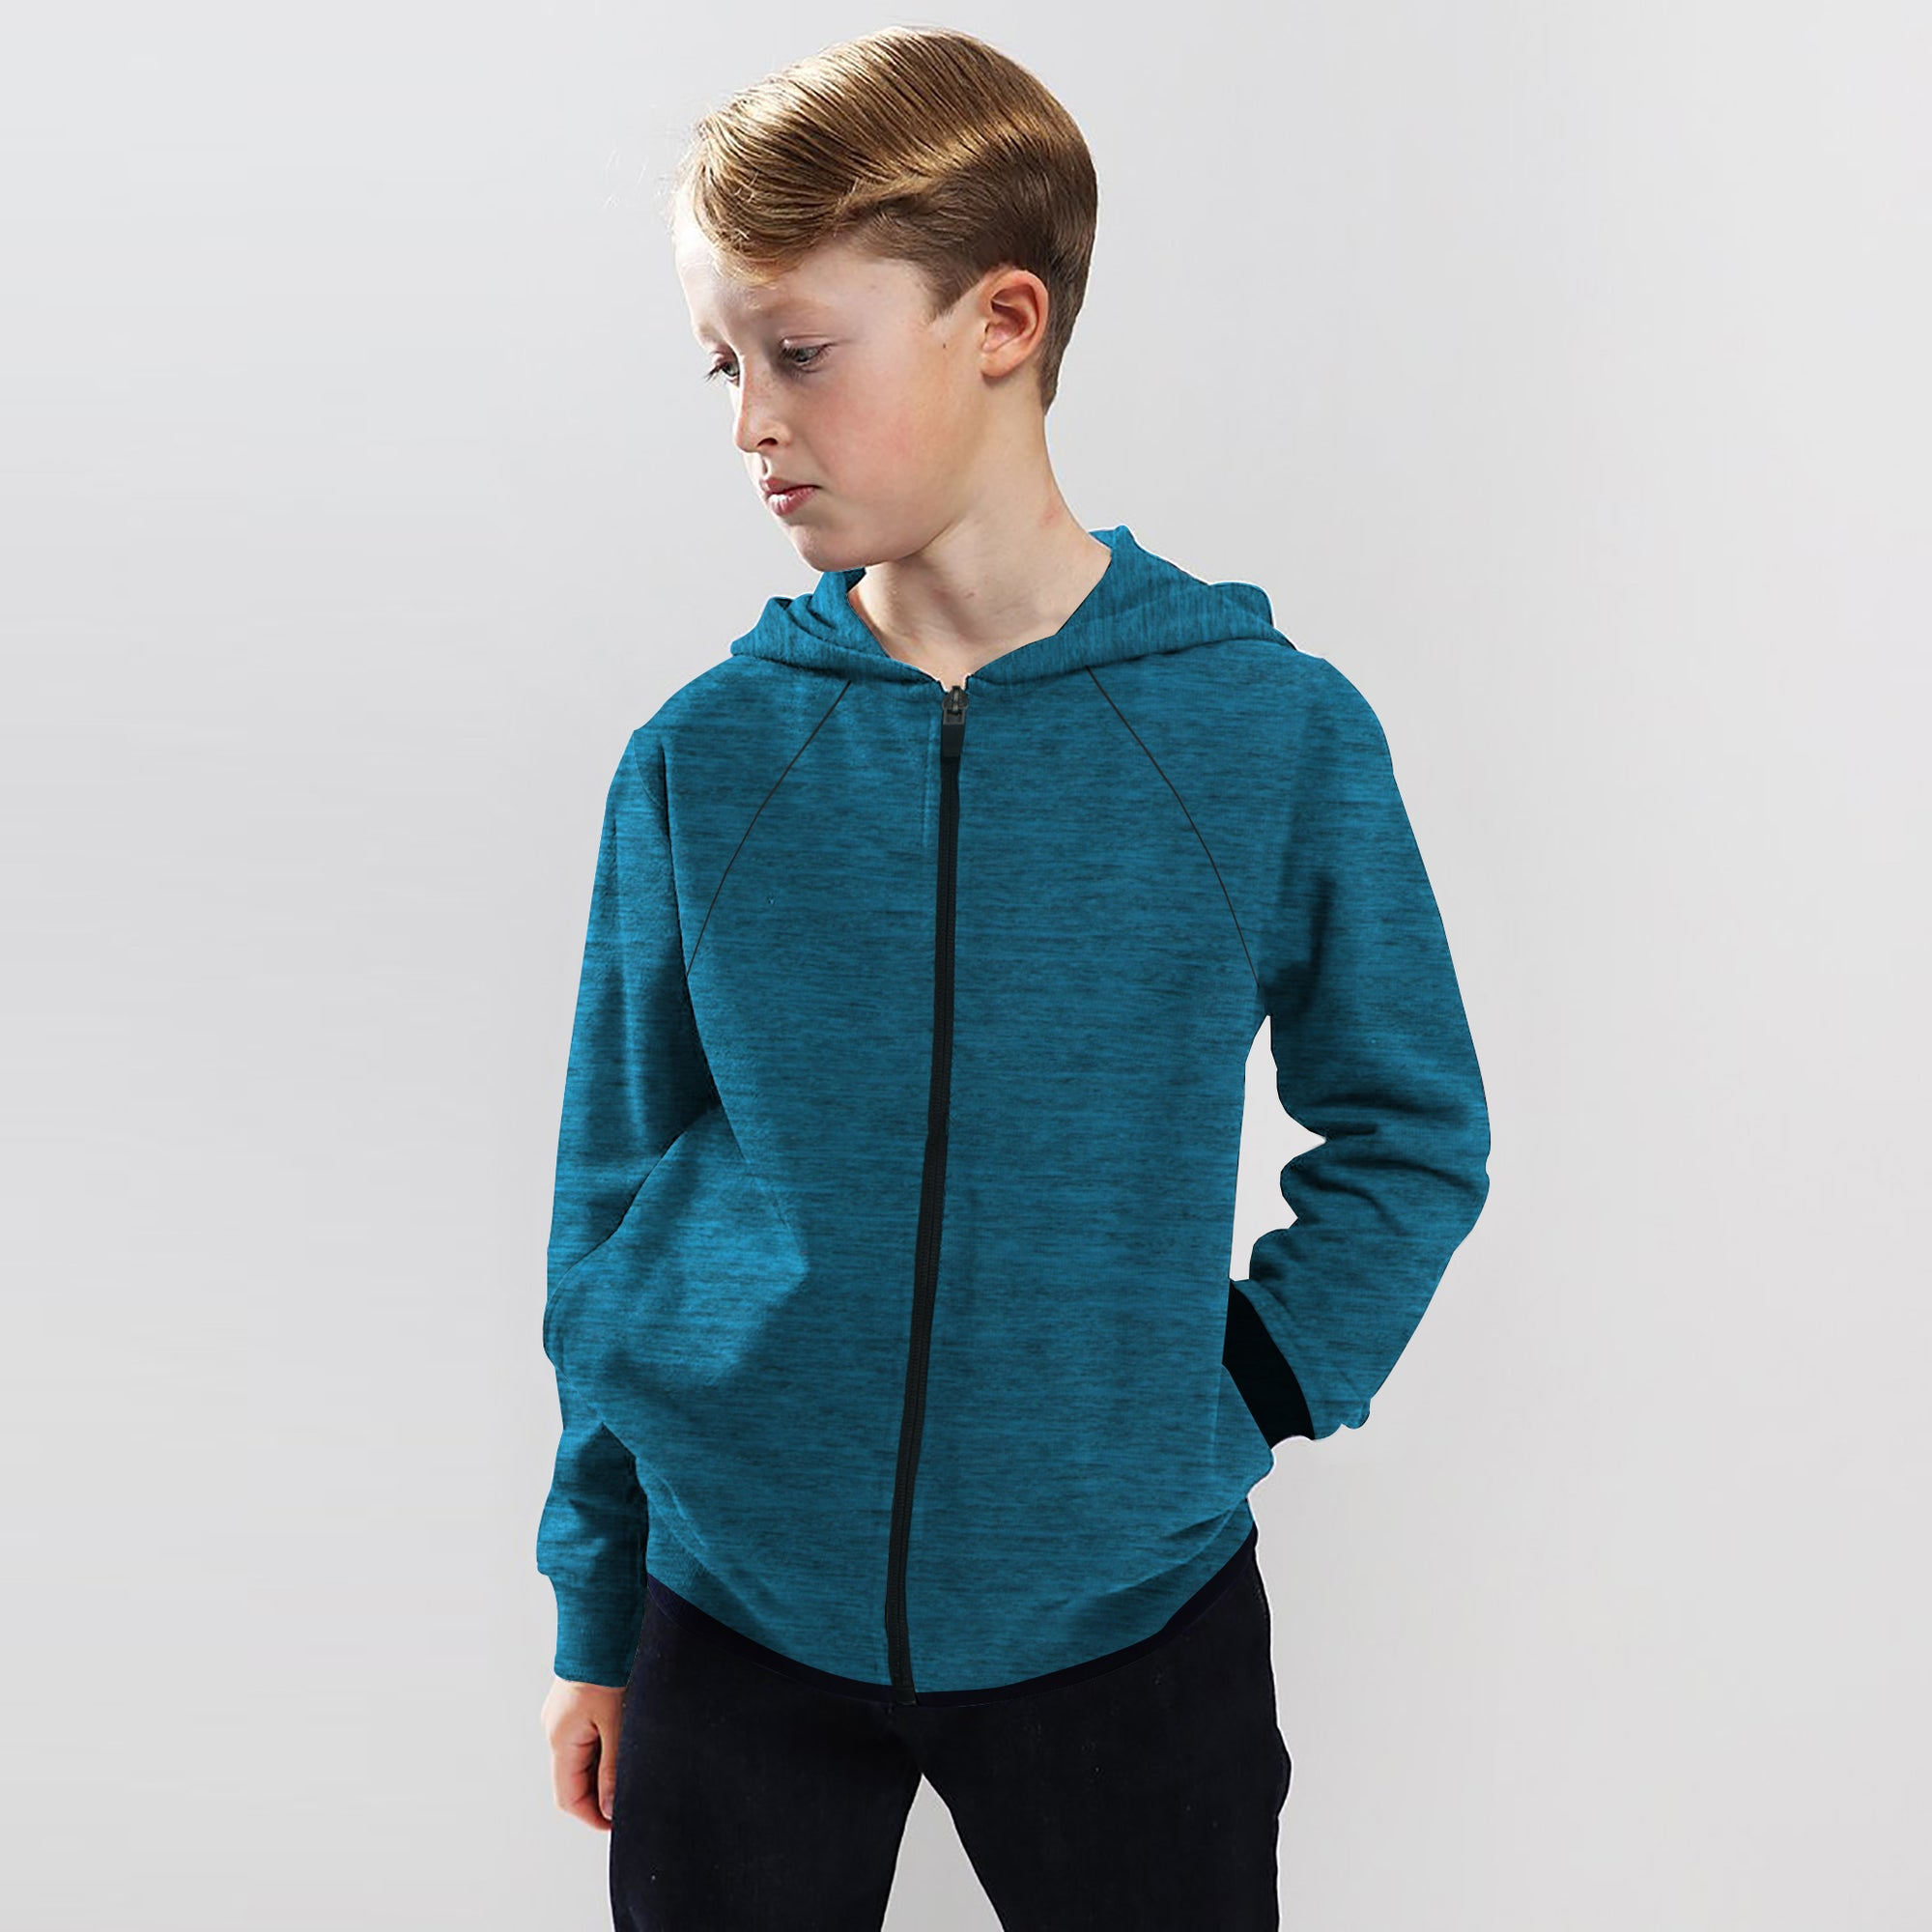 Next Terry Fleece Zipper Hoodie For Kids-Dark Syan Melange-SP861